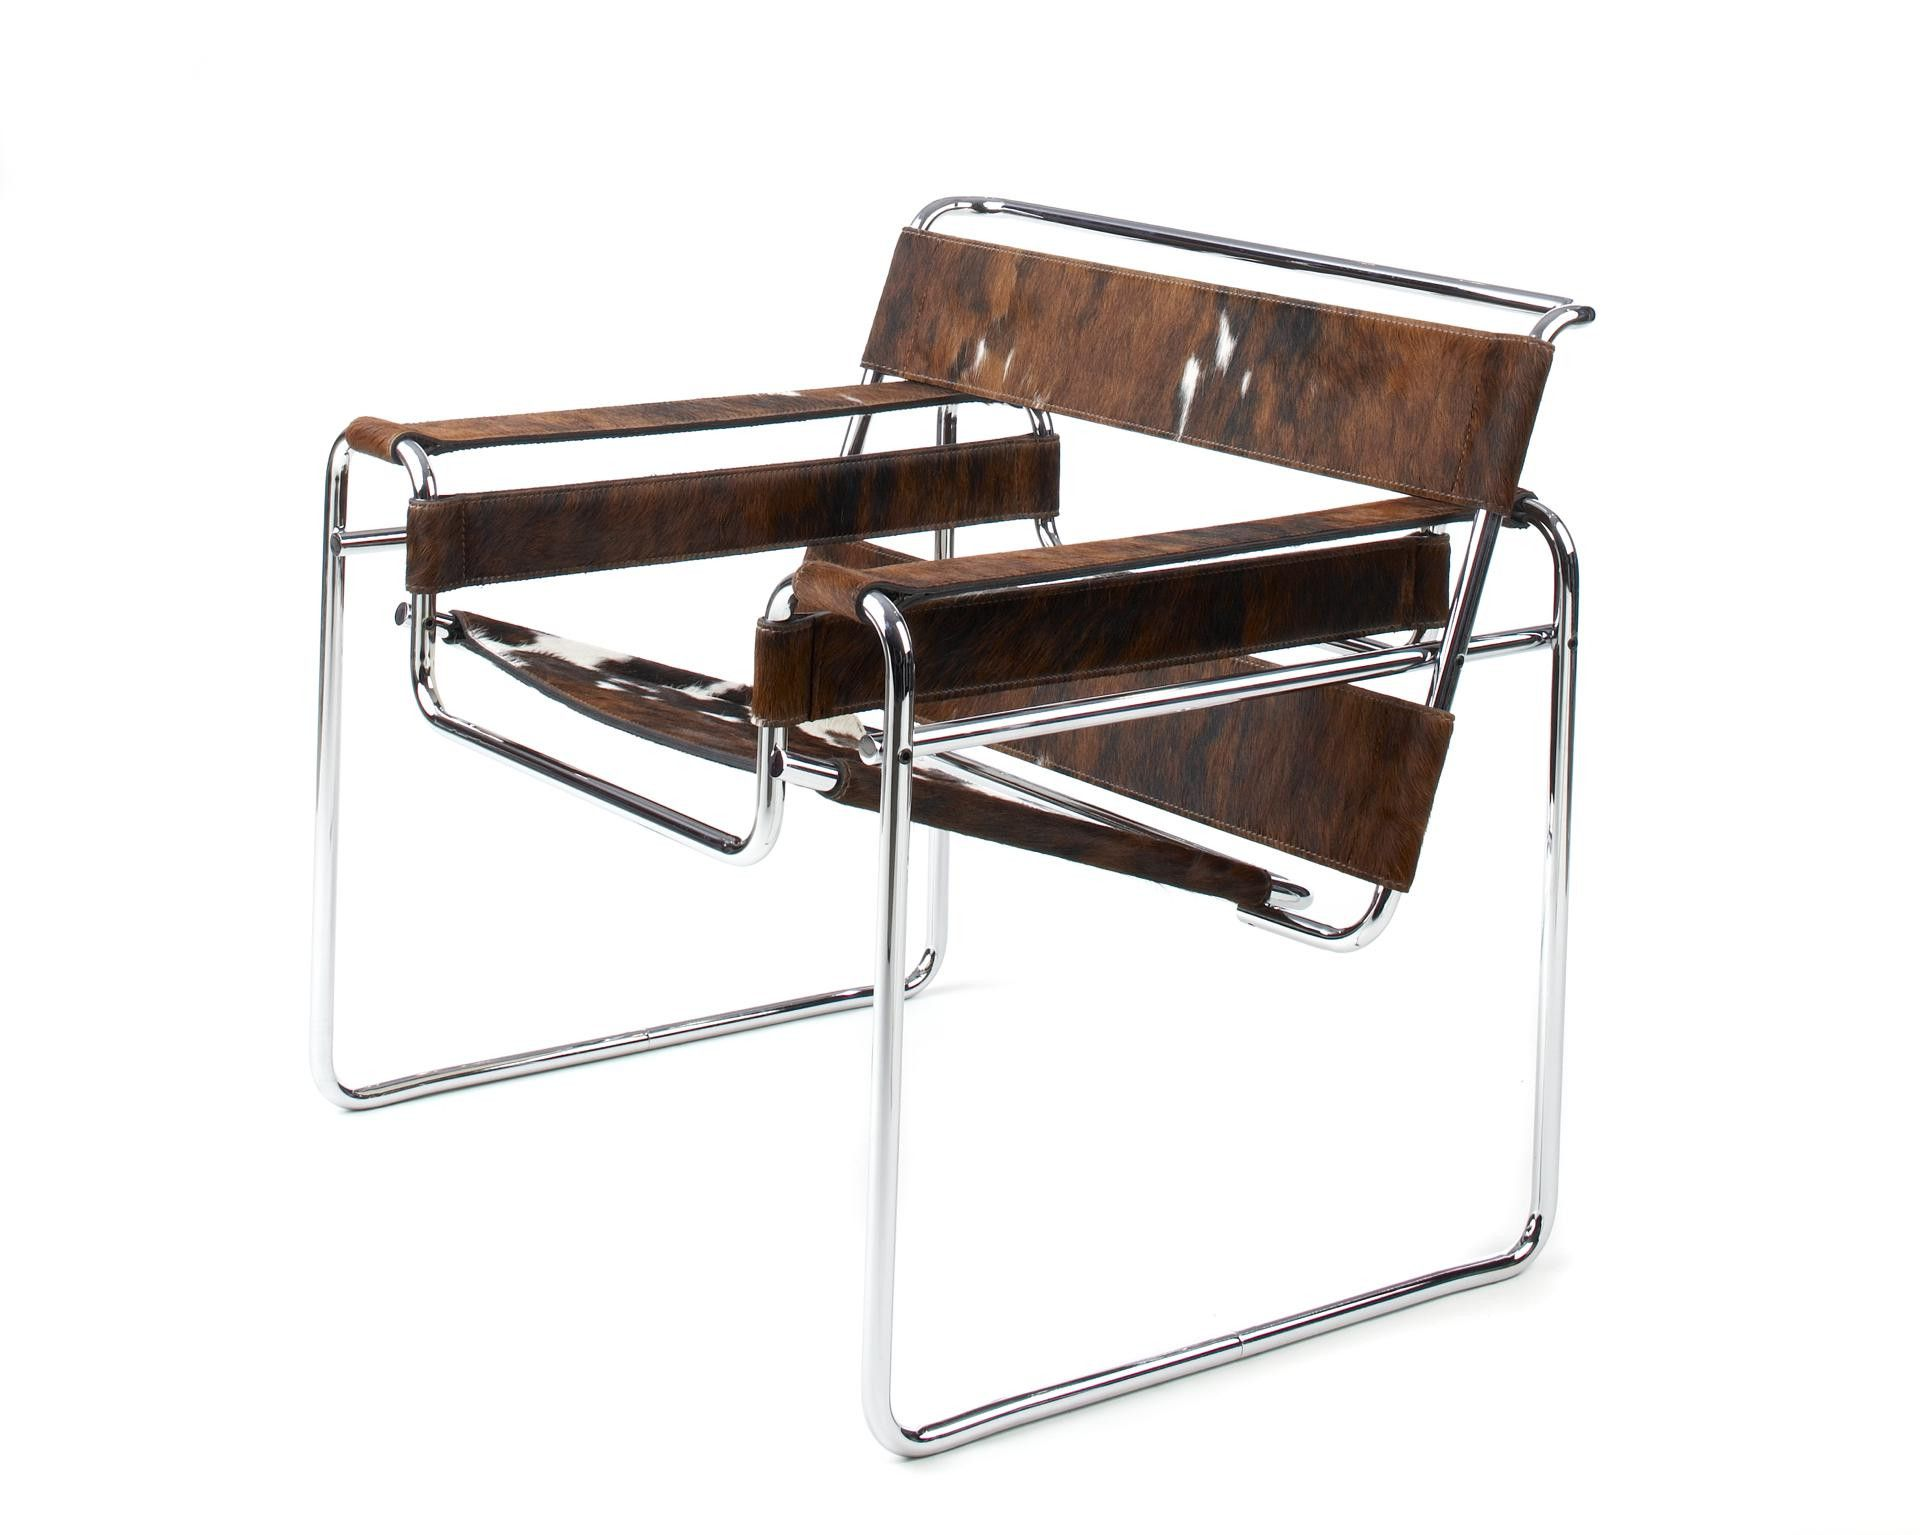 Wassily Lounge Chair Wassily chair, Chair, Marcel breuer